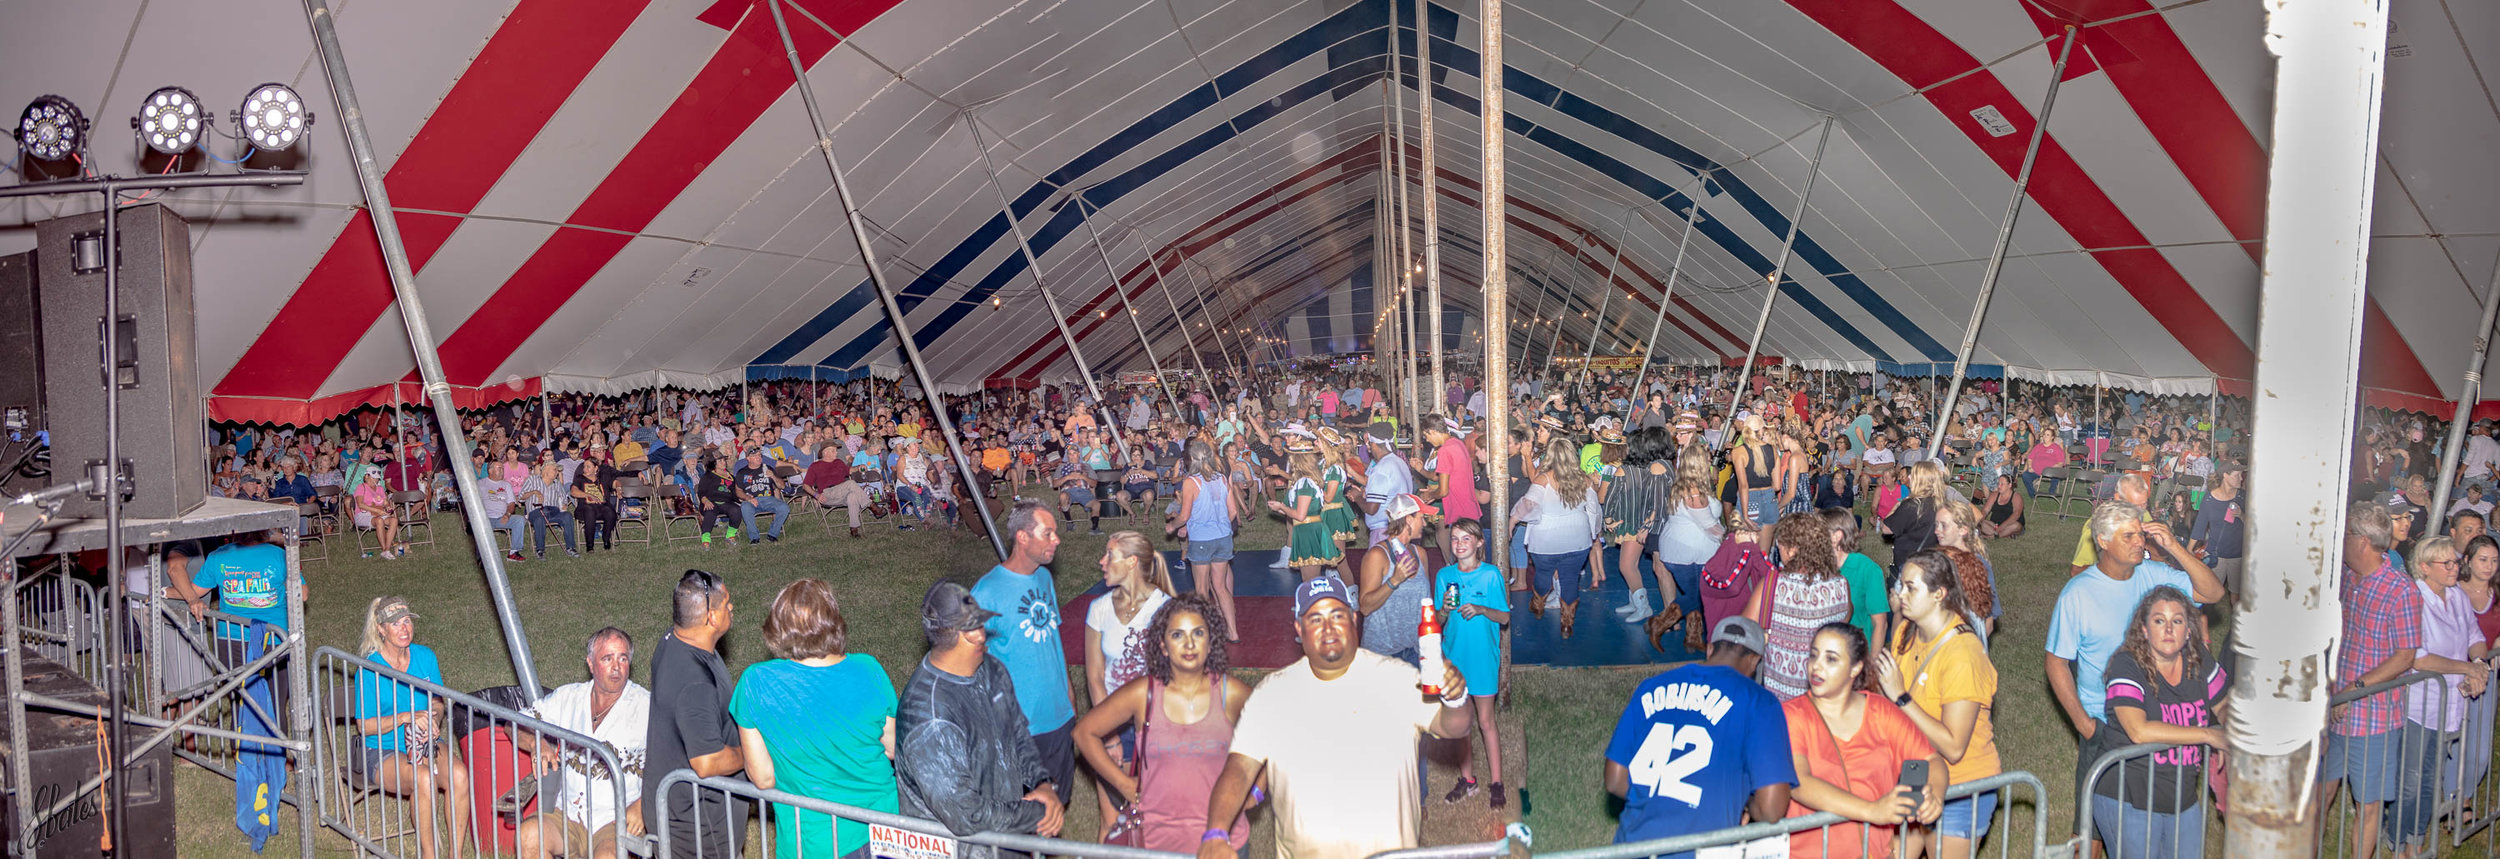 View of crowd forming to watch the Spazmatics band. Steve used his most powerful flash to light up the whole tent.